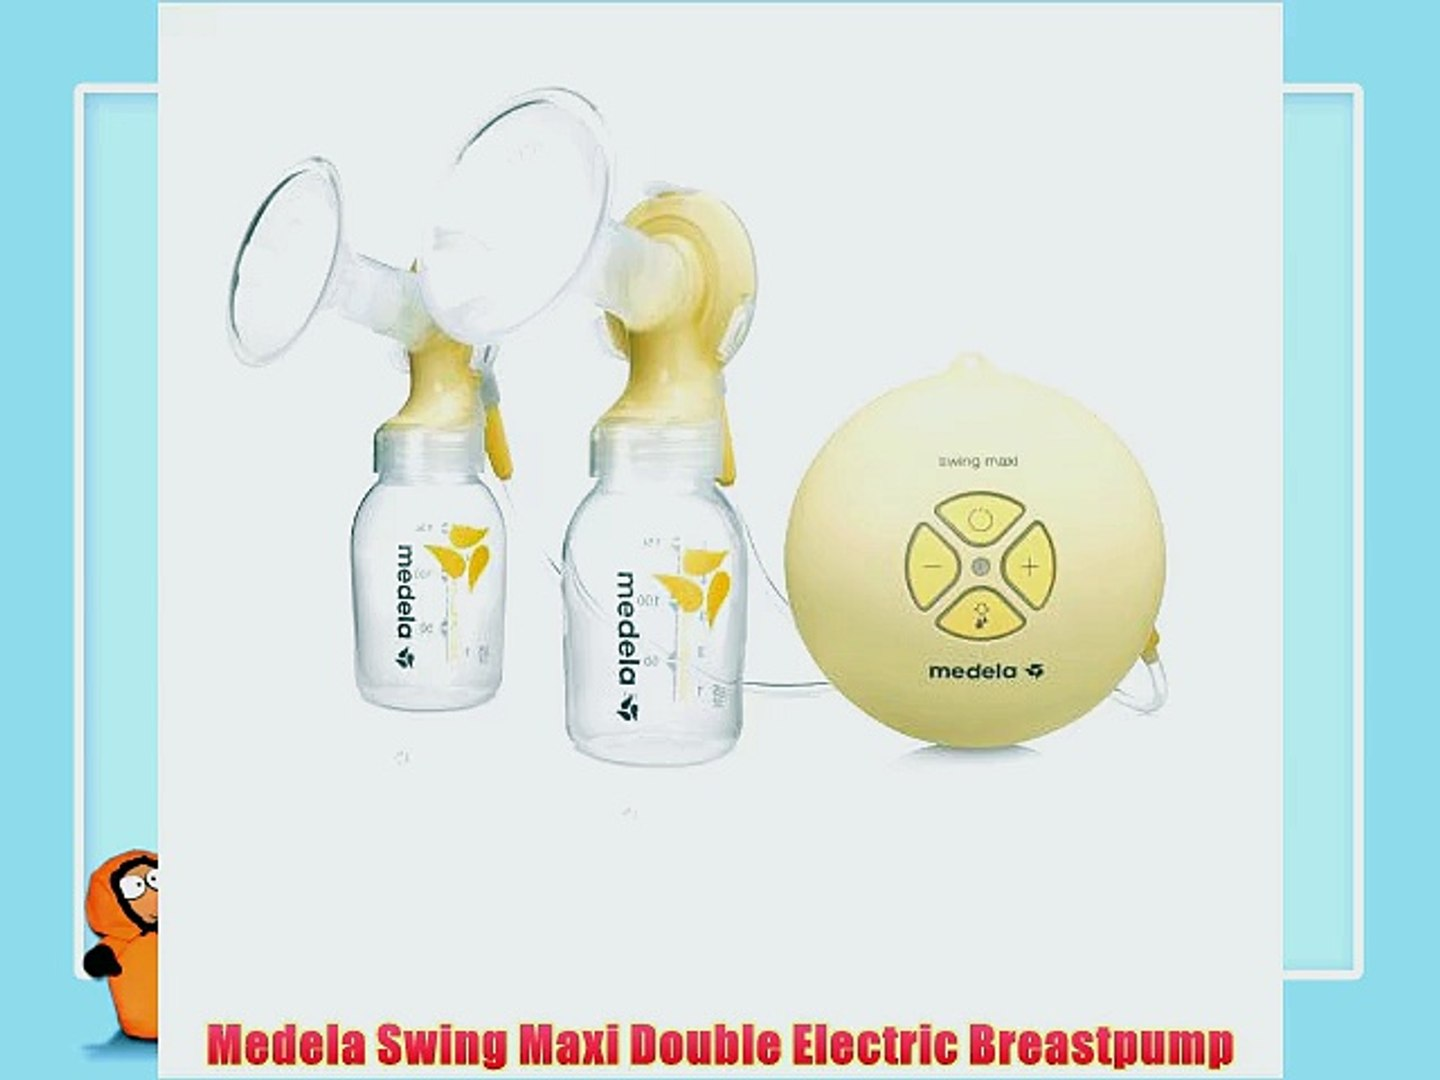 Medela Swing Maxi Double Electric Breastpump Video Dailymotion